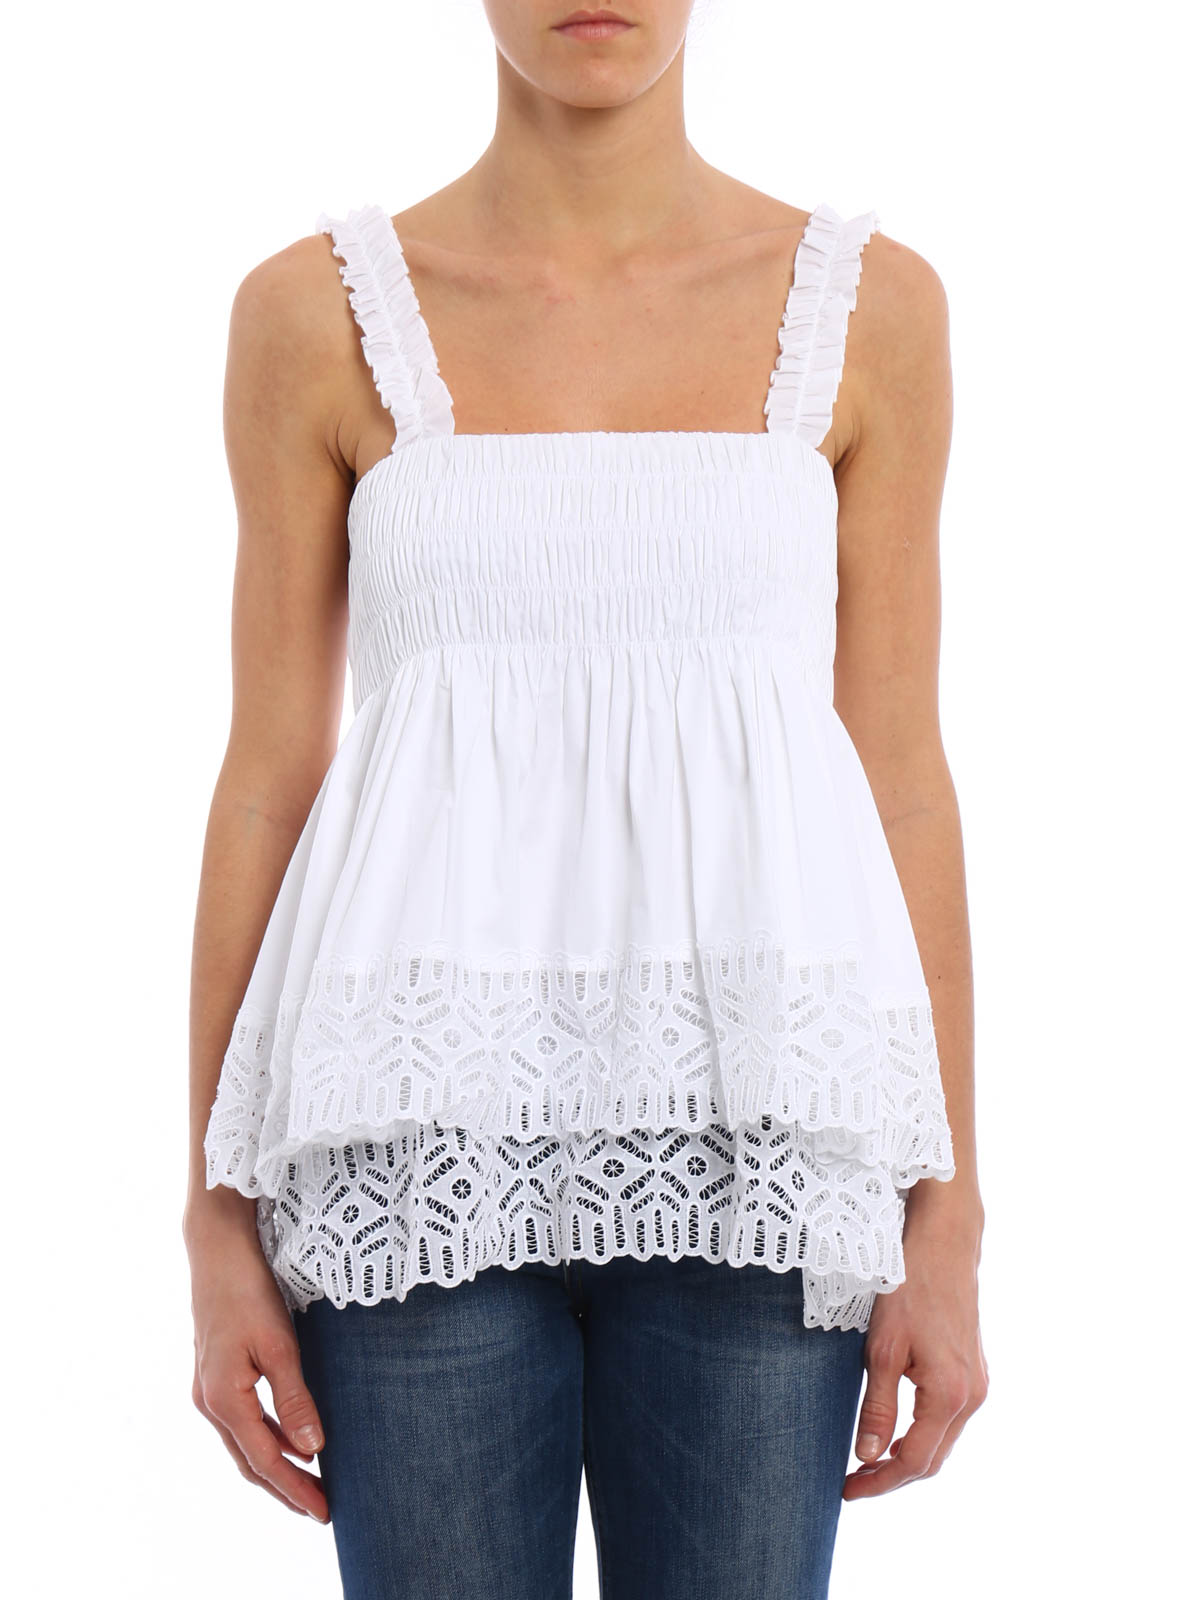 6fde2a486 Tory Burch - Broderie anglaise trimmed top - Tops & Tank tops ...